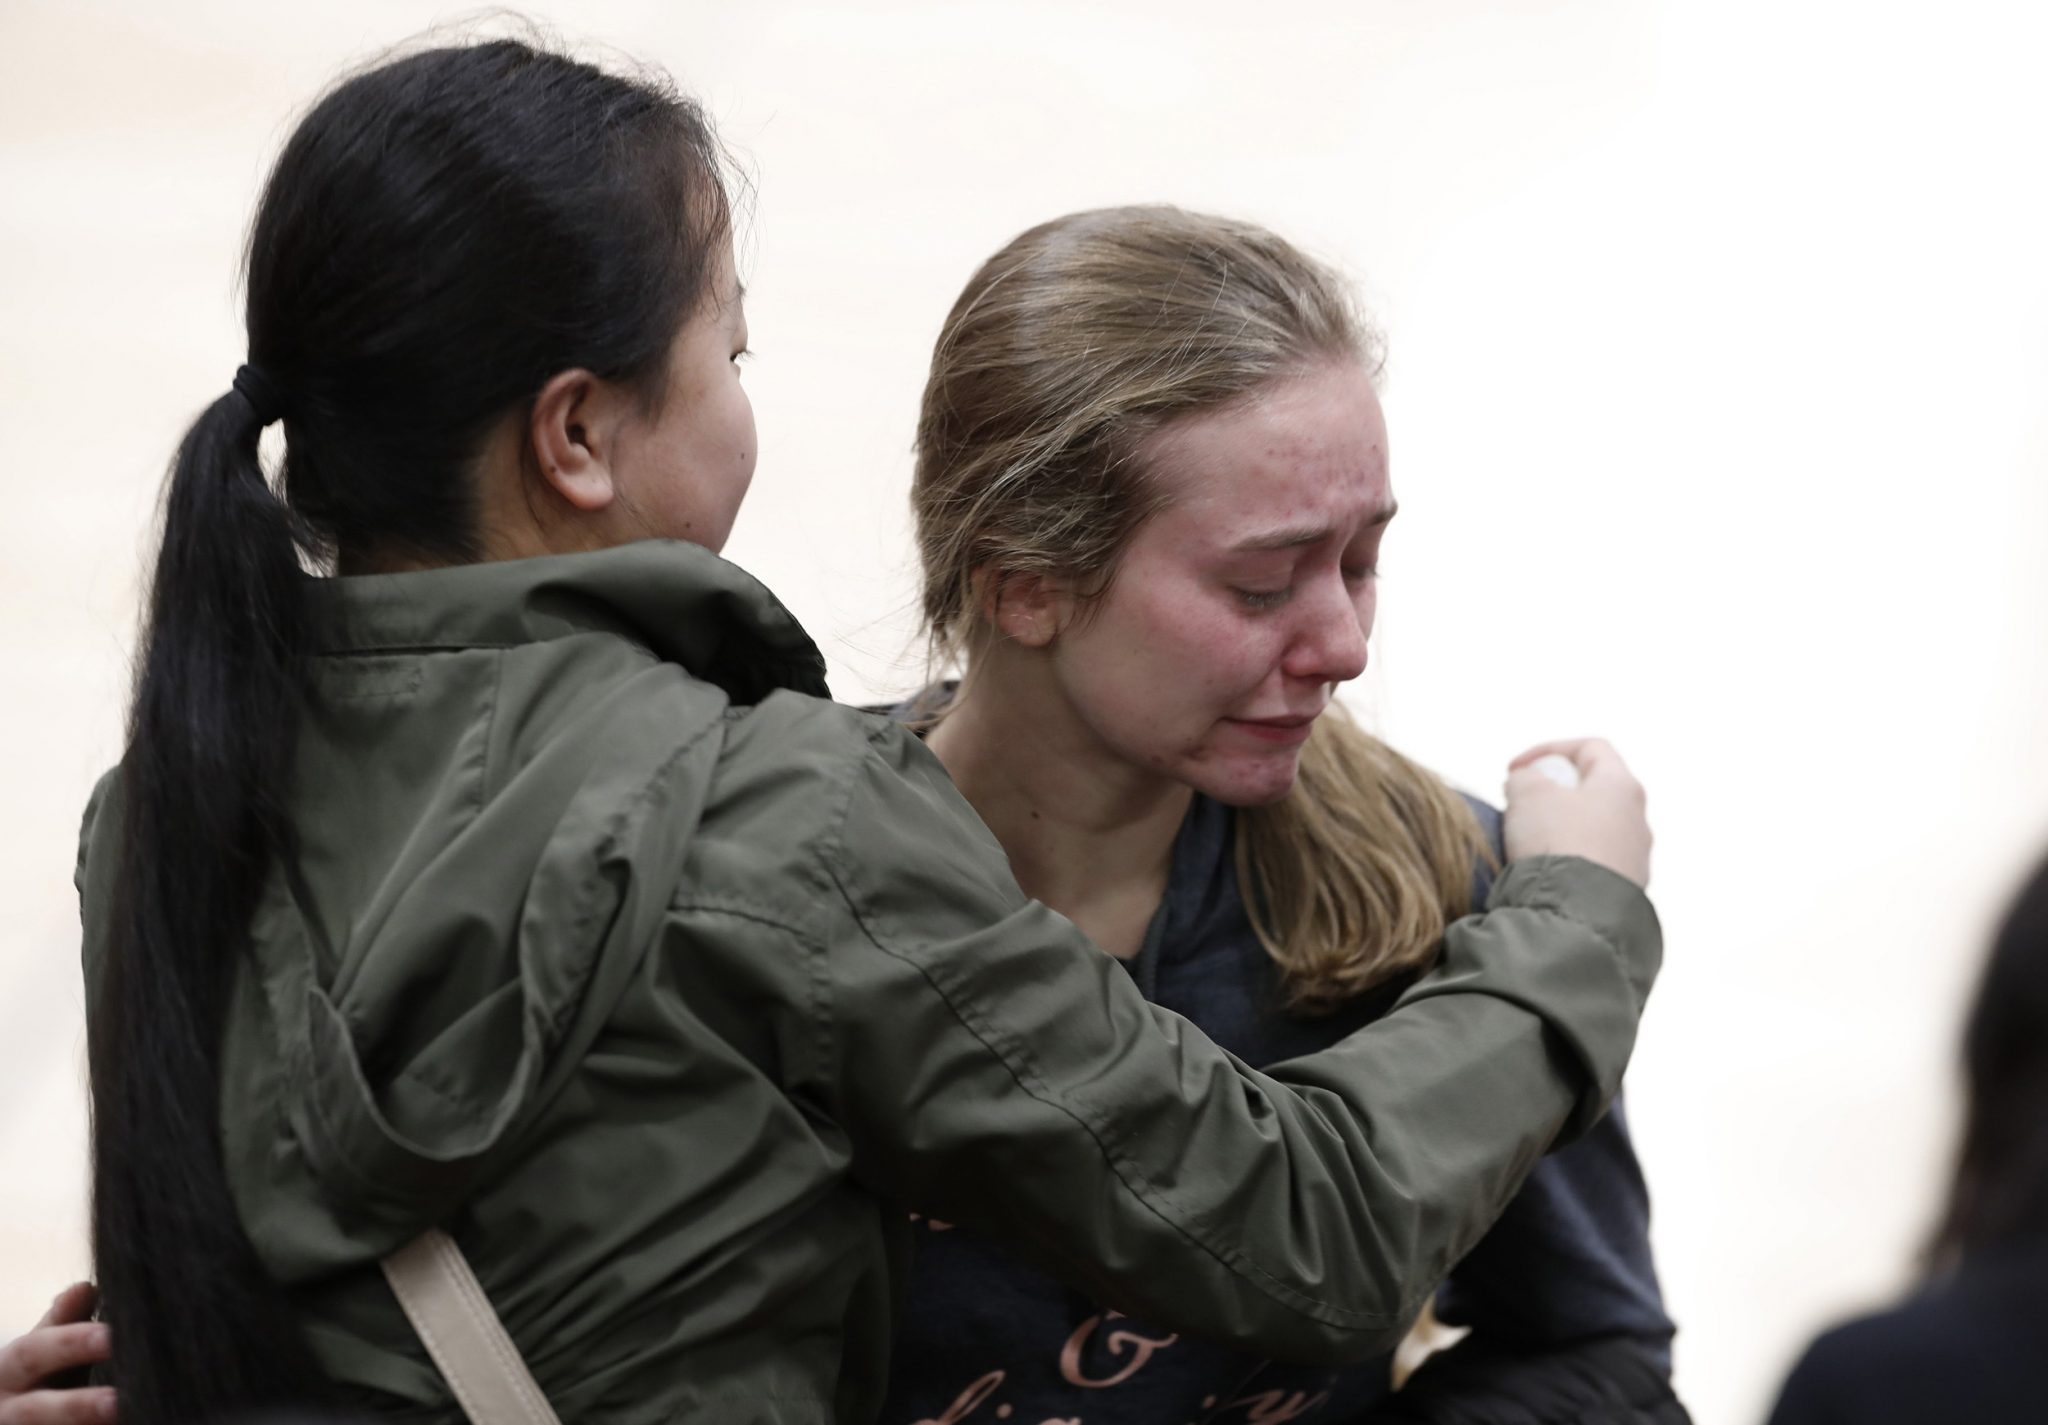 No thought for their own safety: Hero students disarm gunman